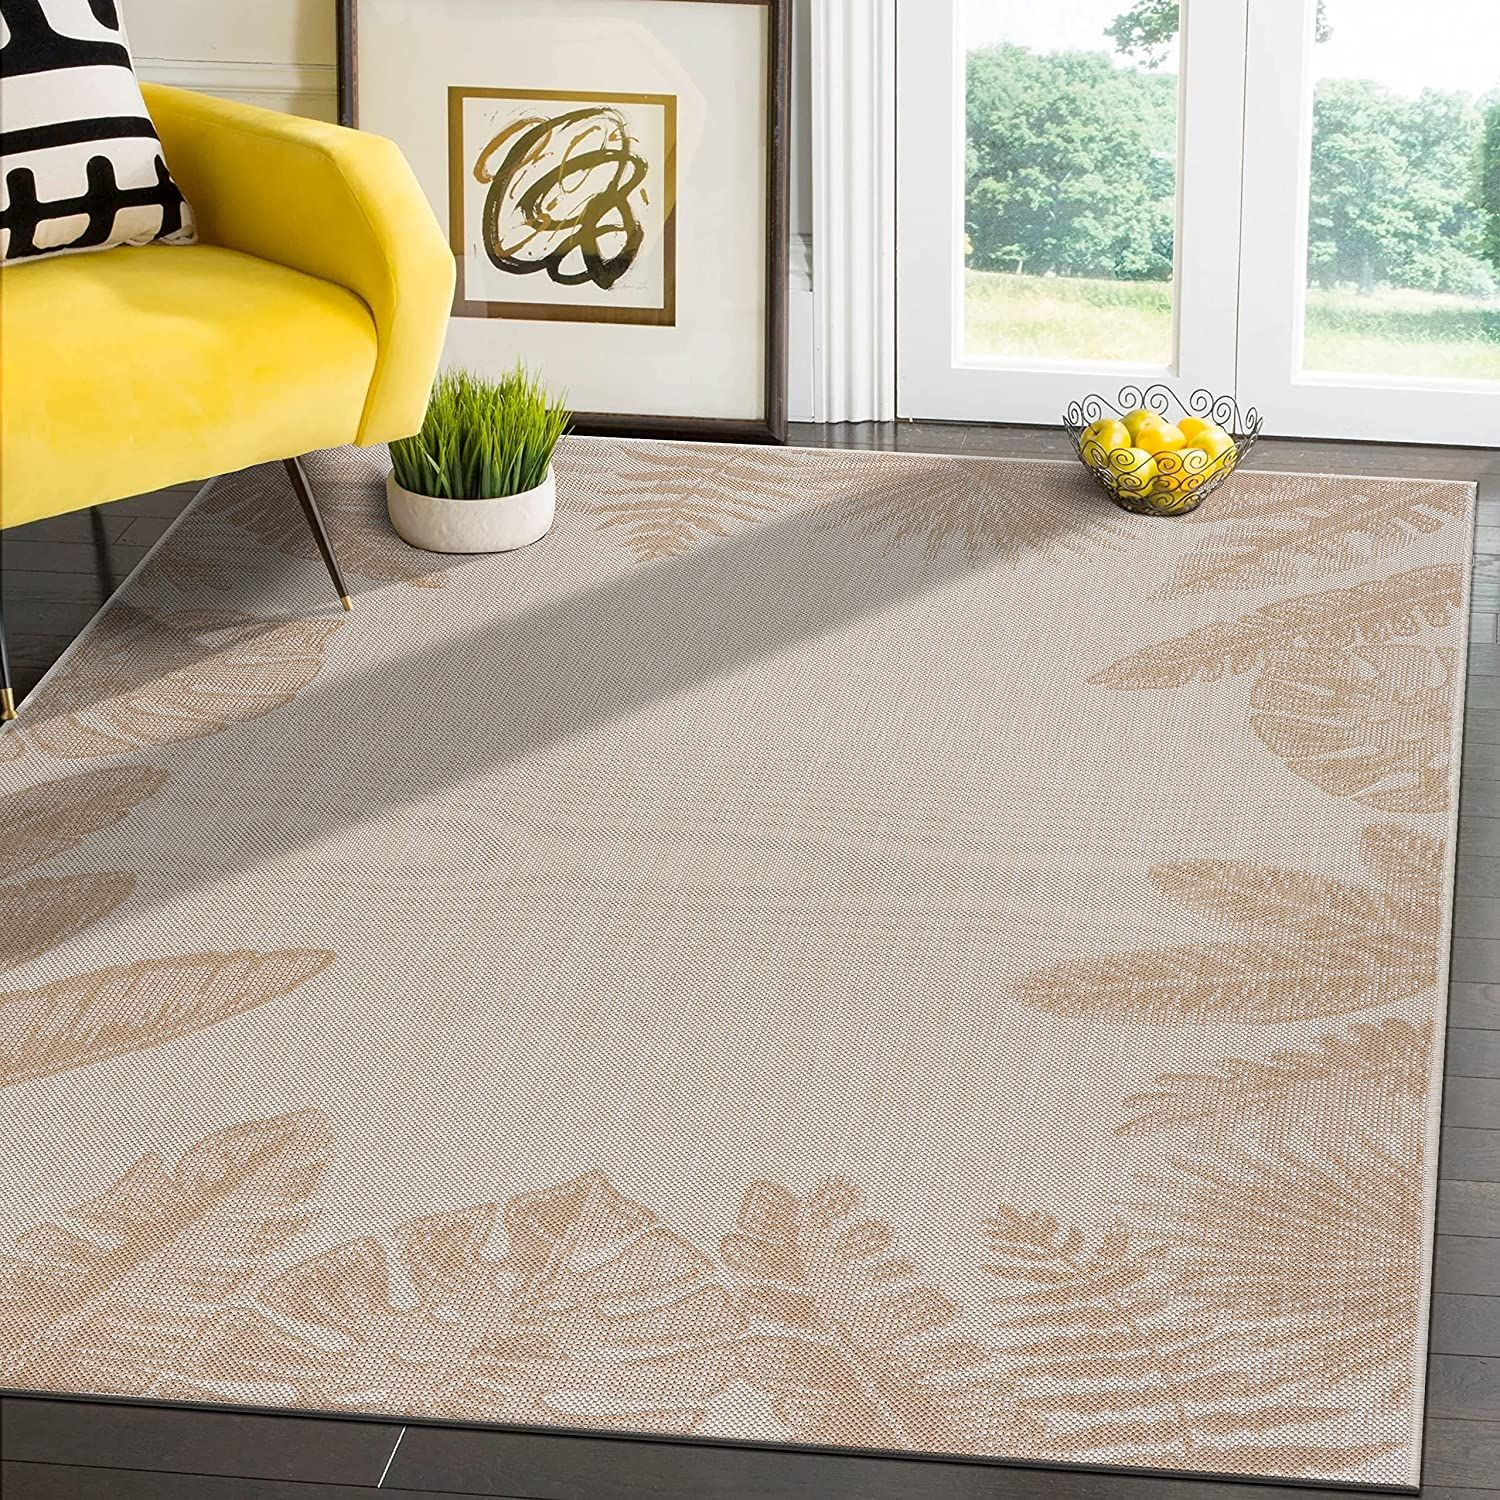 Modern Exotic Tropical Leaf Area Rugs for Indoor Outdoor   Beige / White   8x10 Gallery